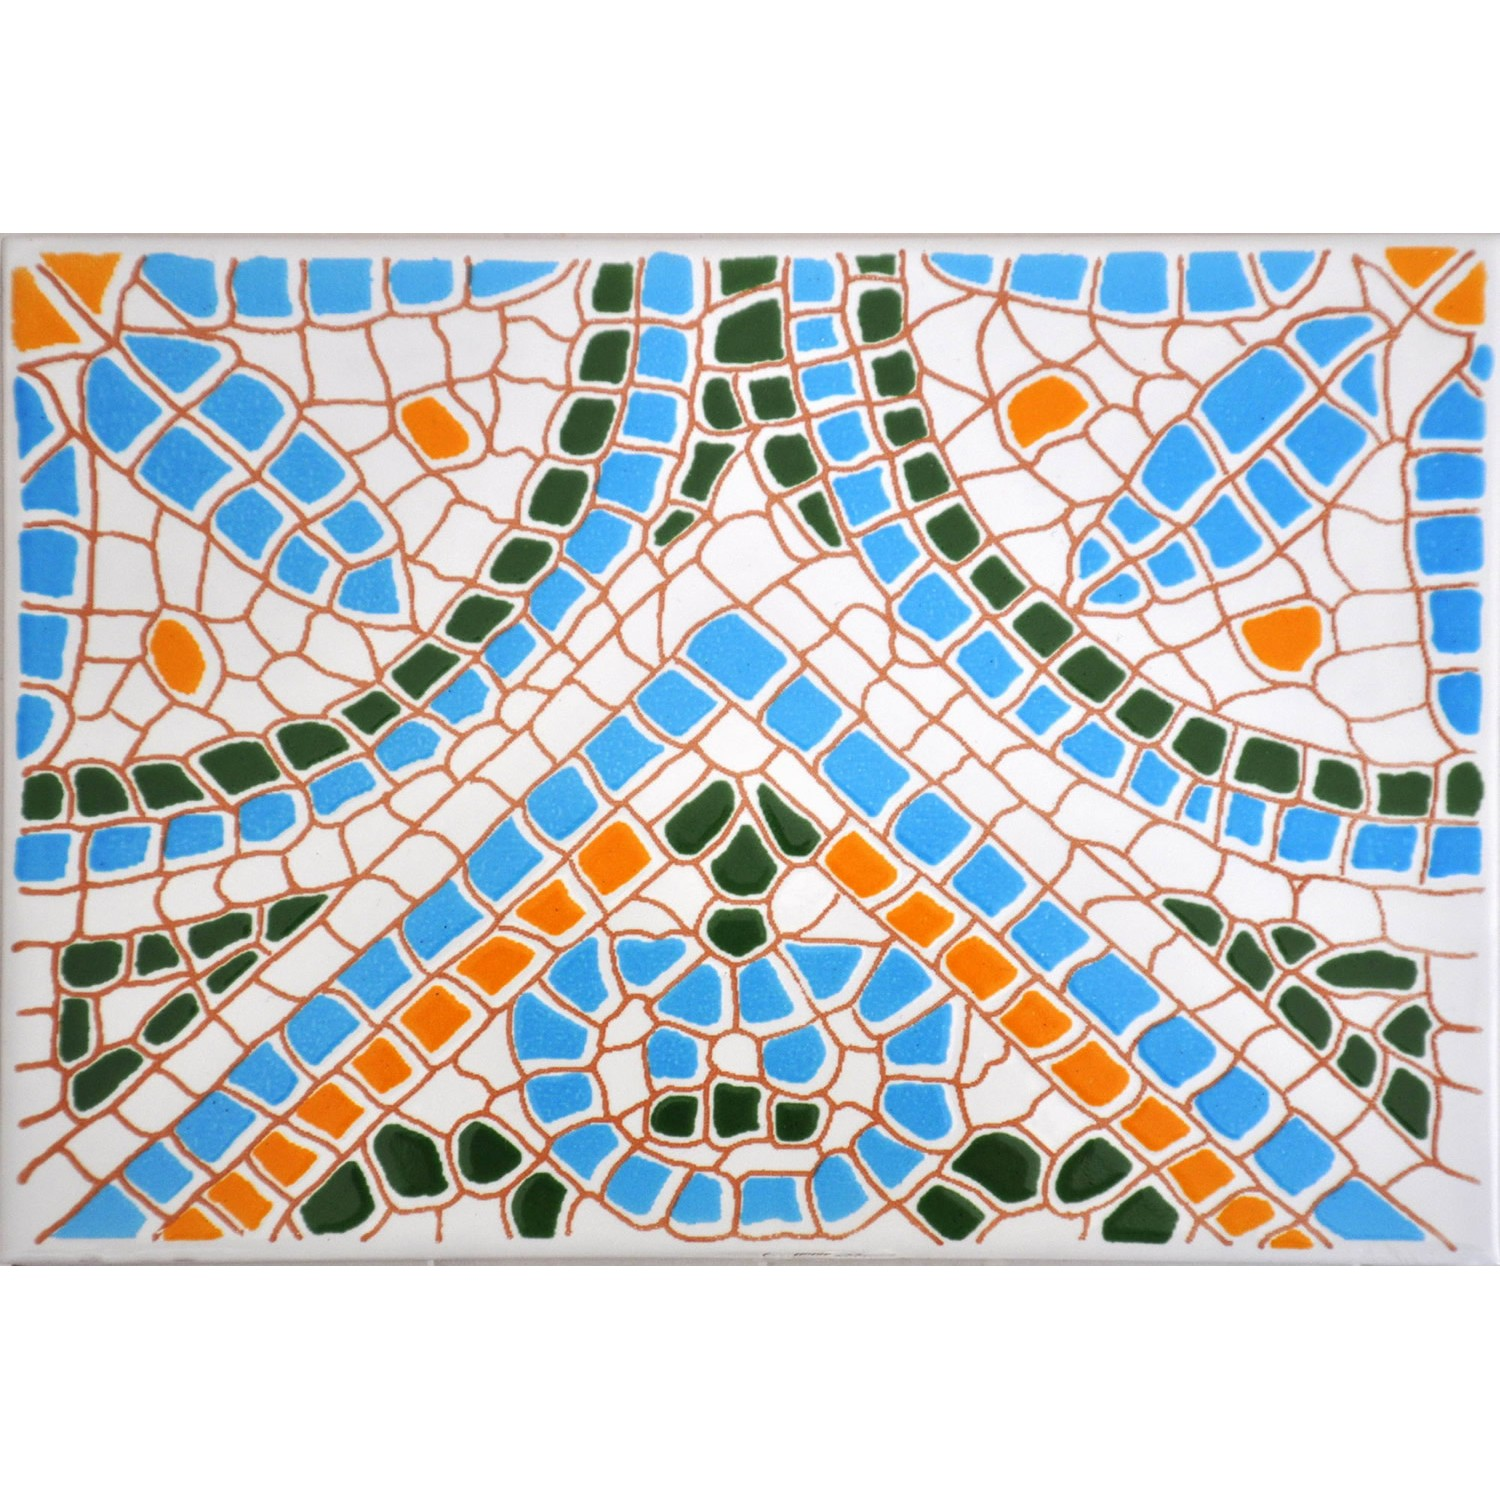 Mosaico Orange Turchese 15x20